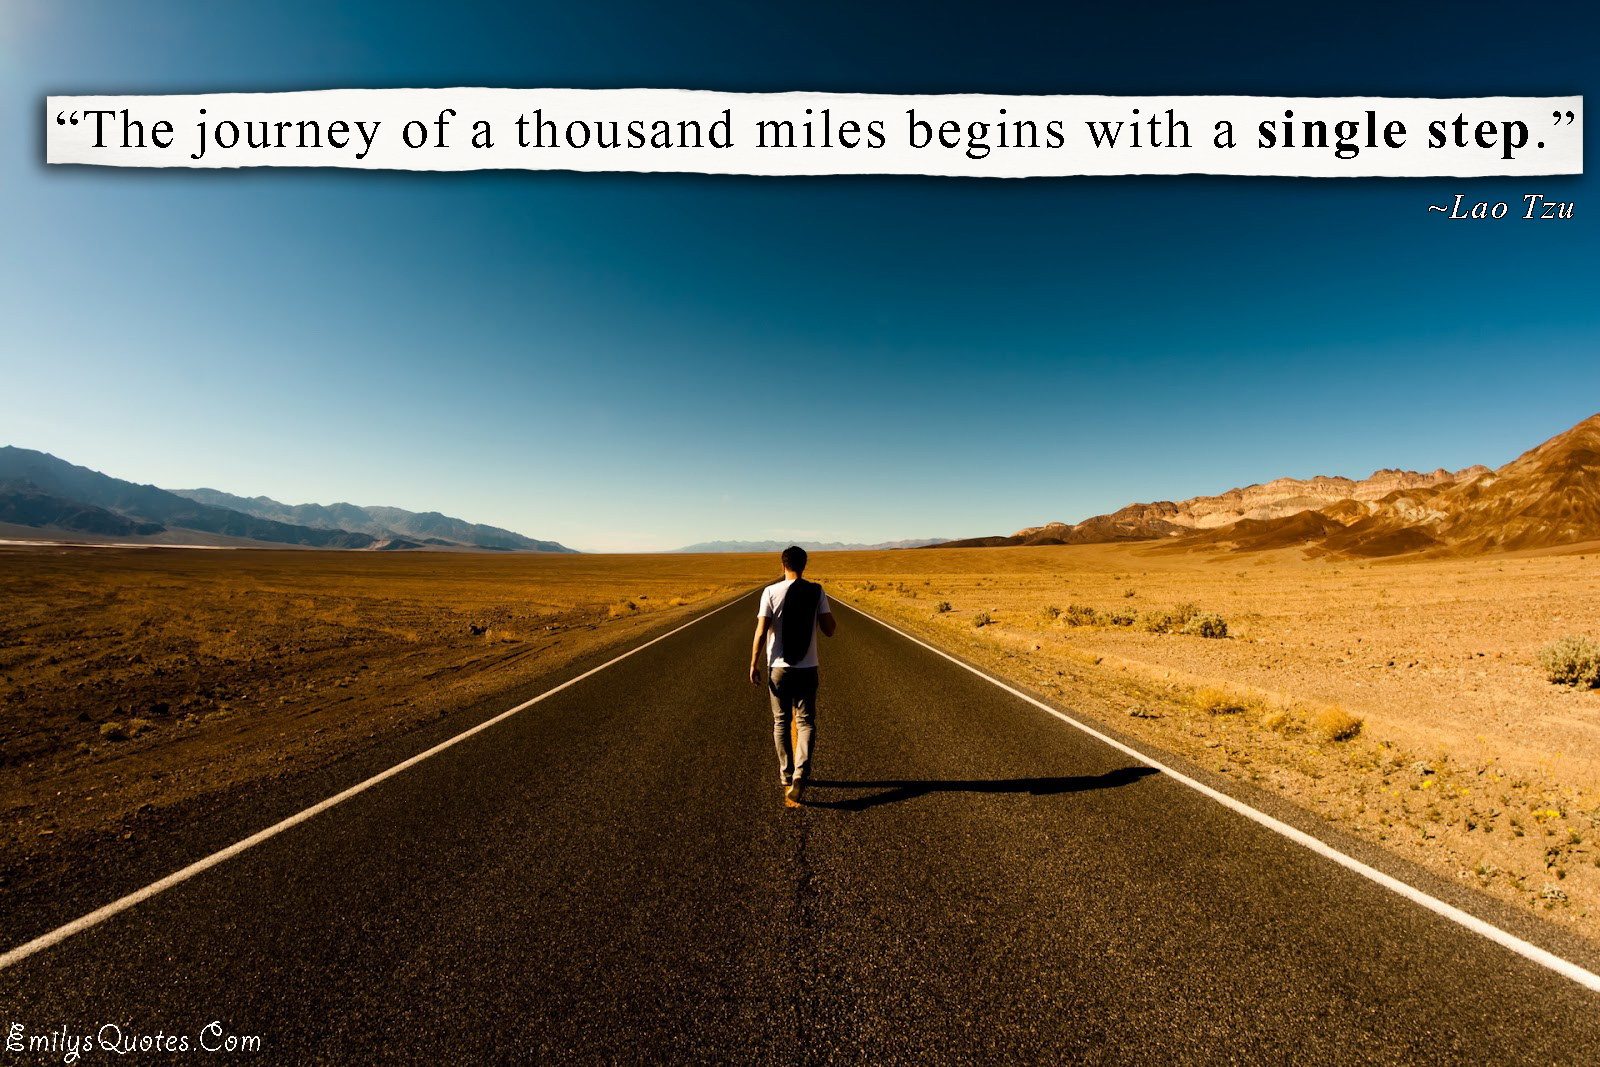 EmilysQuotes.Com - journey, travel, single step, inspirational, amazing, great, decision, Lao Tzu